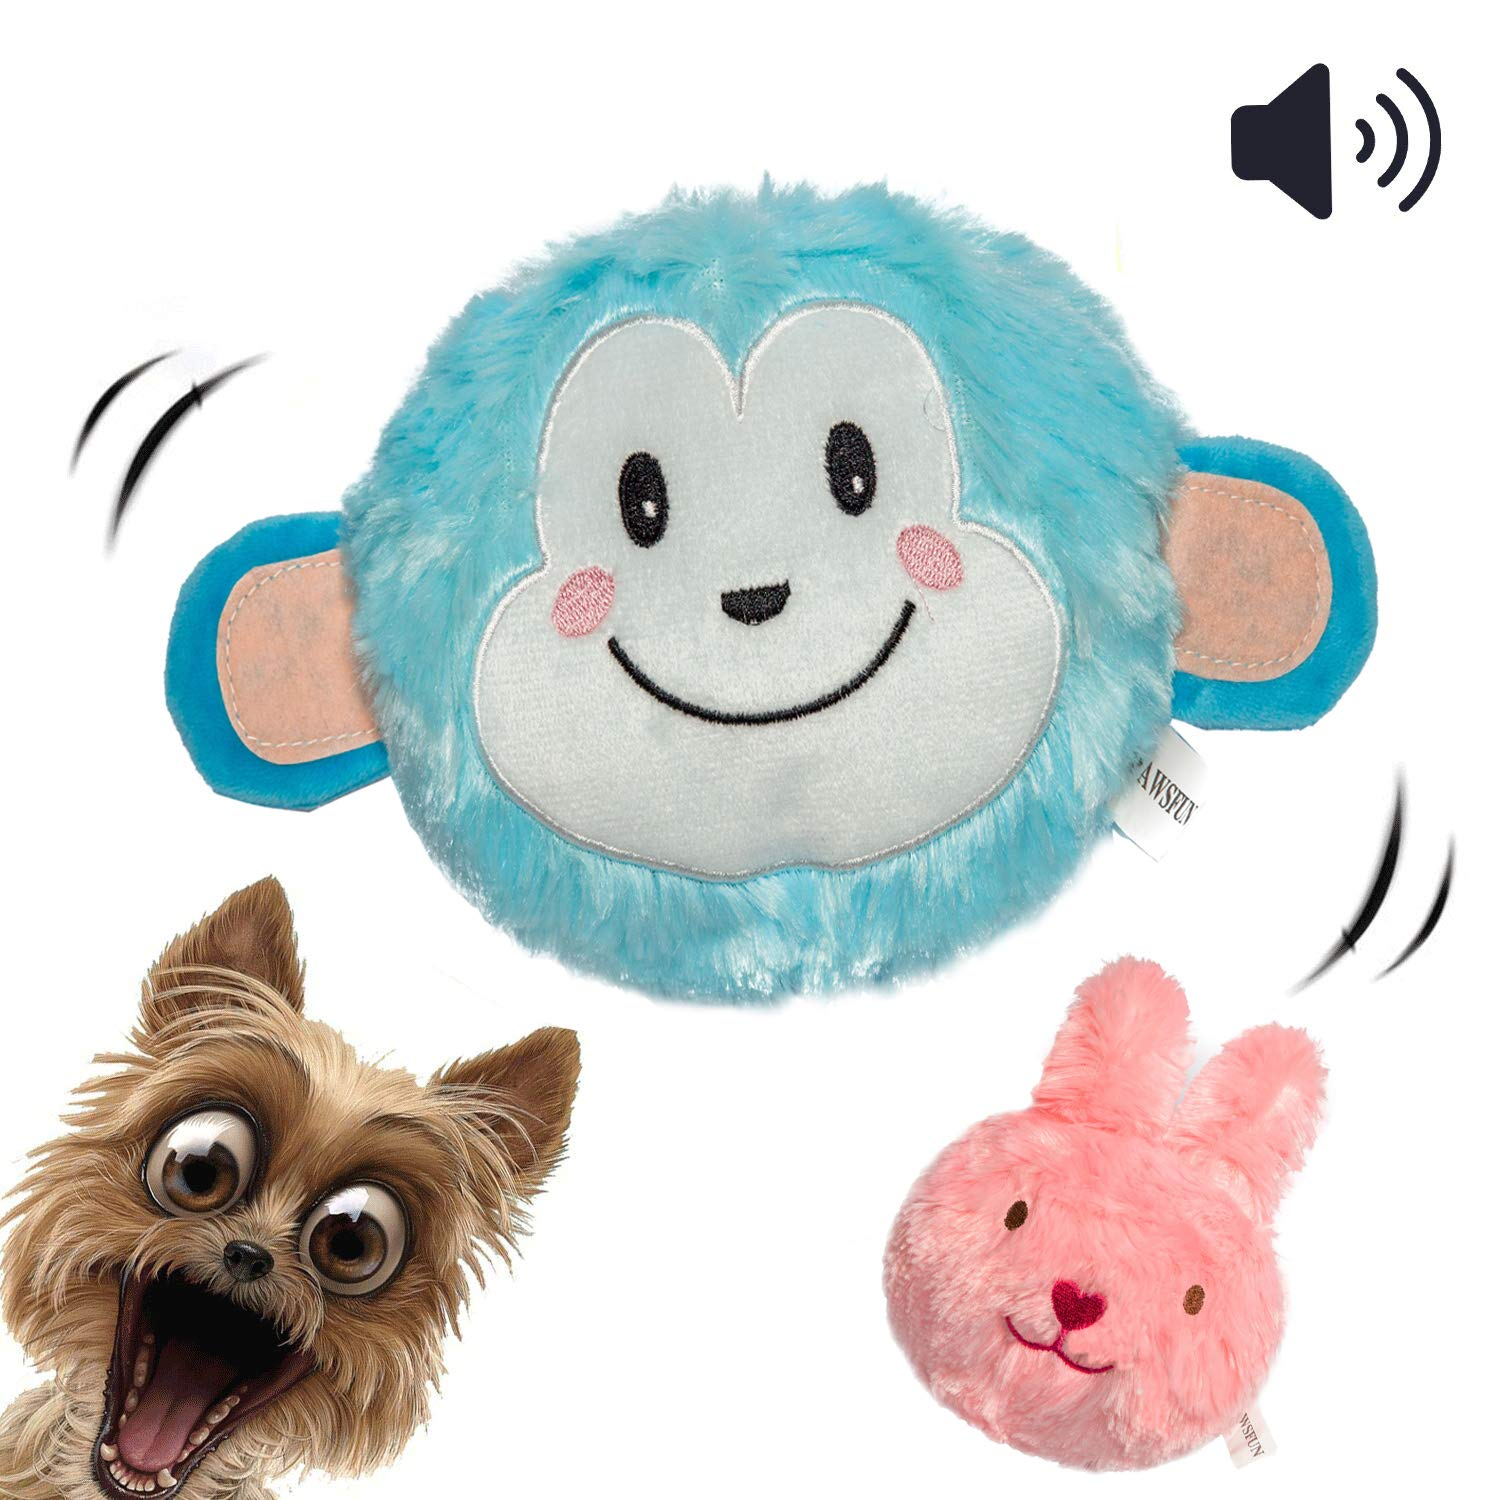 Green Plush Animal Interactive Chew Toy for Puppy Small Medium Dogs Teething Cleaning HEEPDD Squeaky Plush Dog Toys